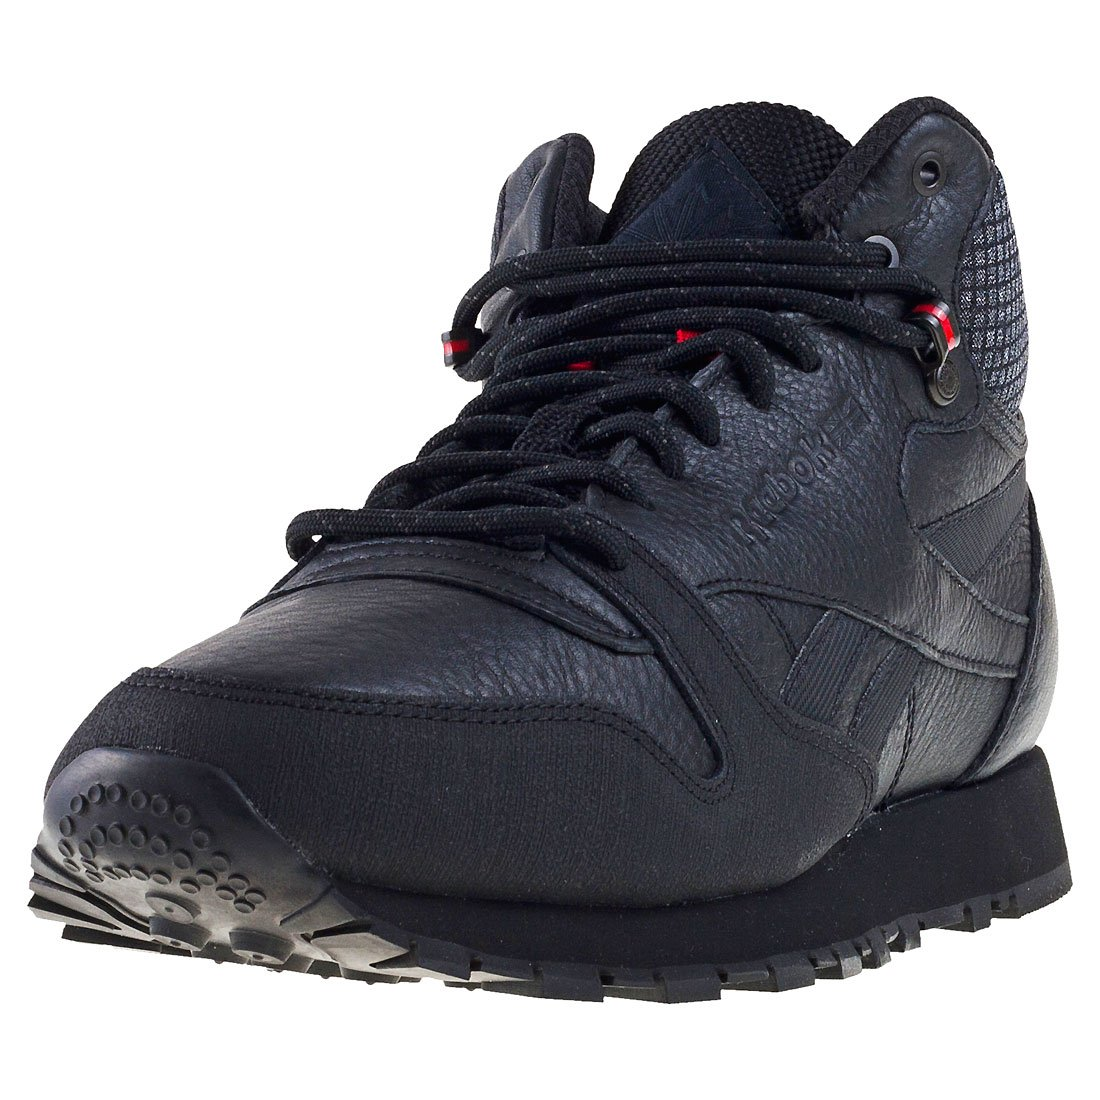 9ab99ff8d95987 Reebok Men s Cl Leather Mid TWD Fitness Shoes  Amazon.co.uk  Shoes   Bags